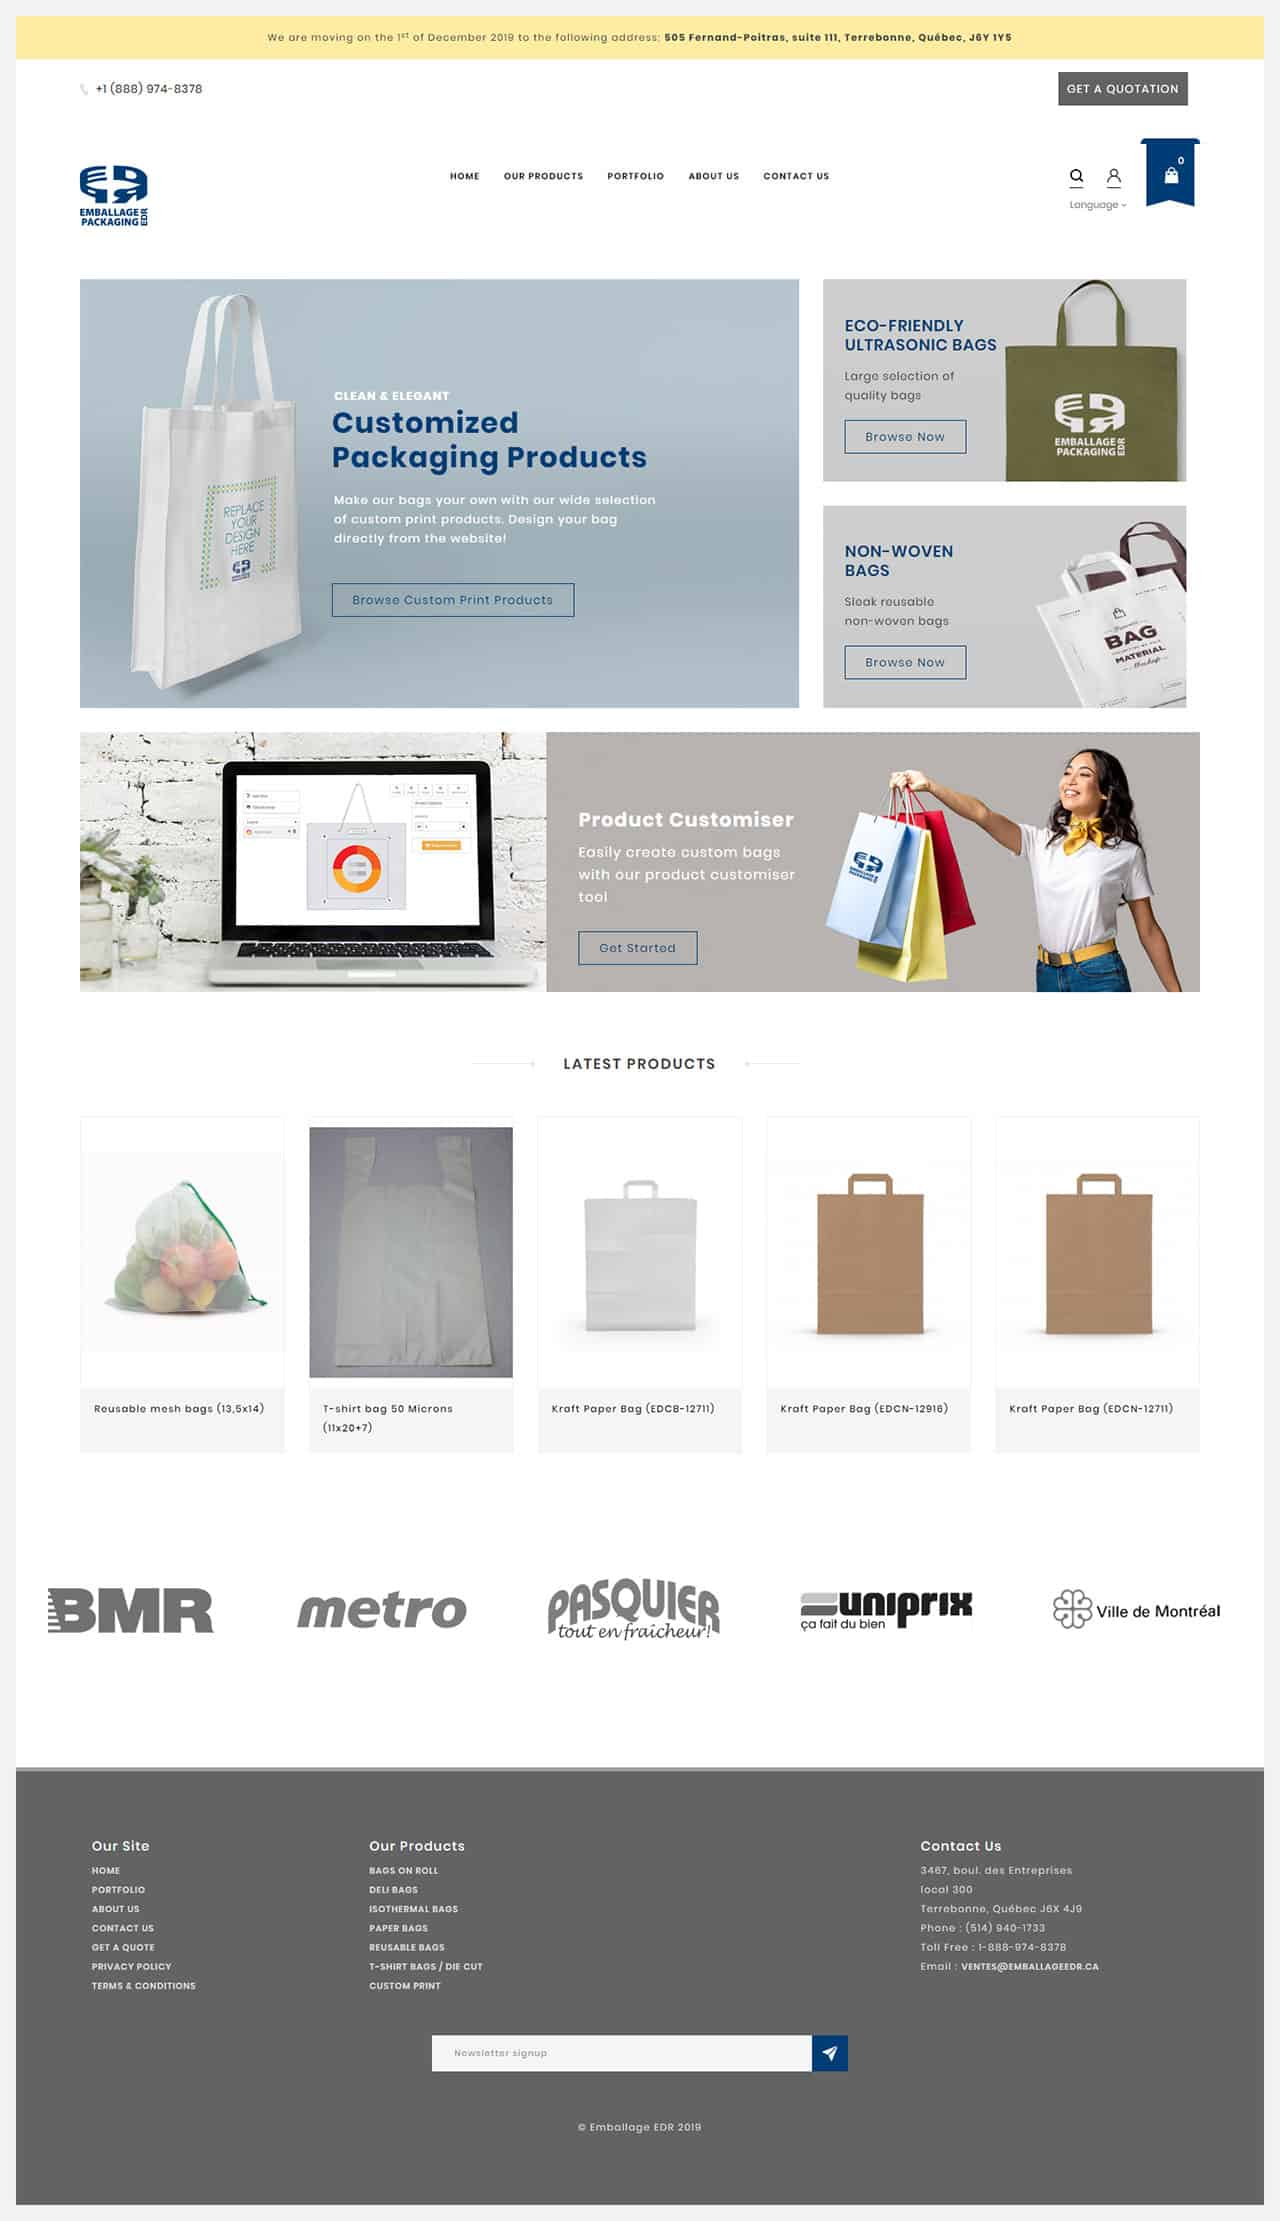 enballage website created by Courimo